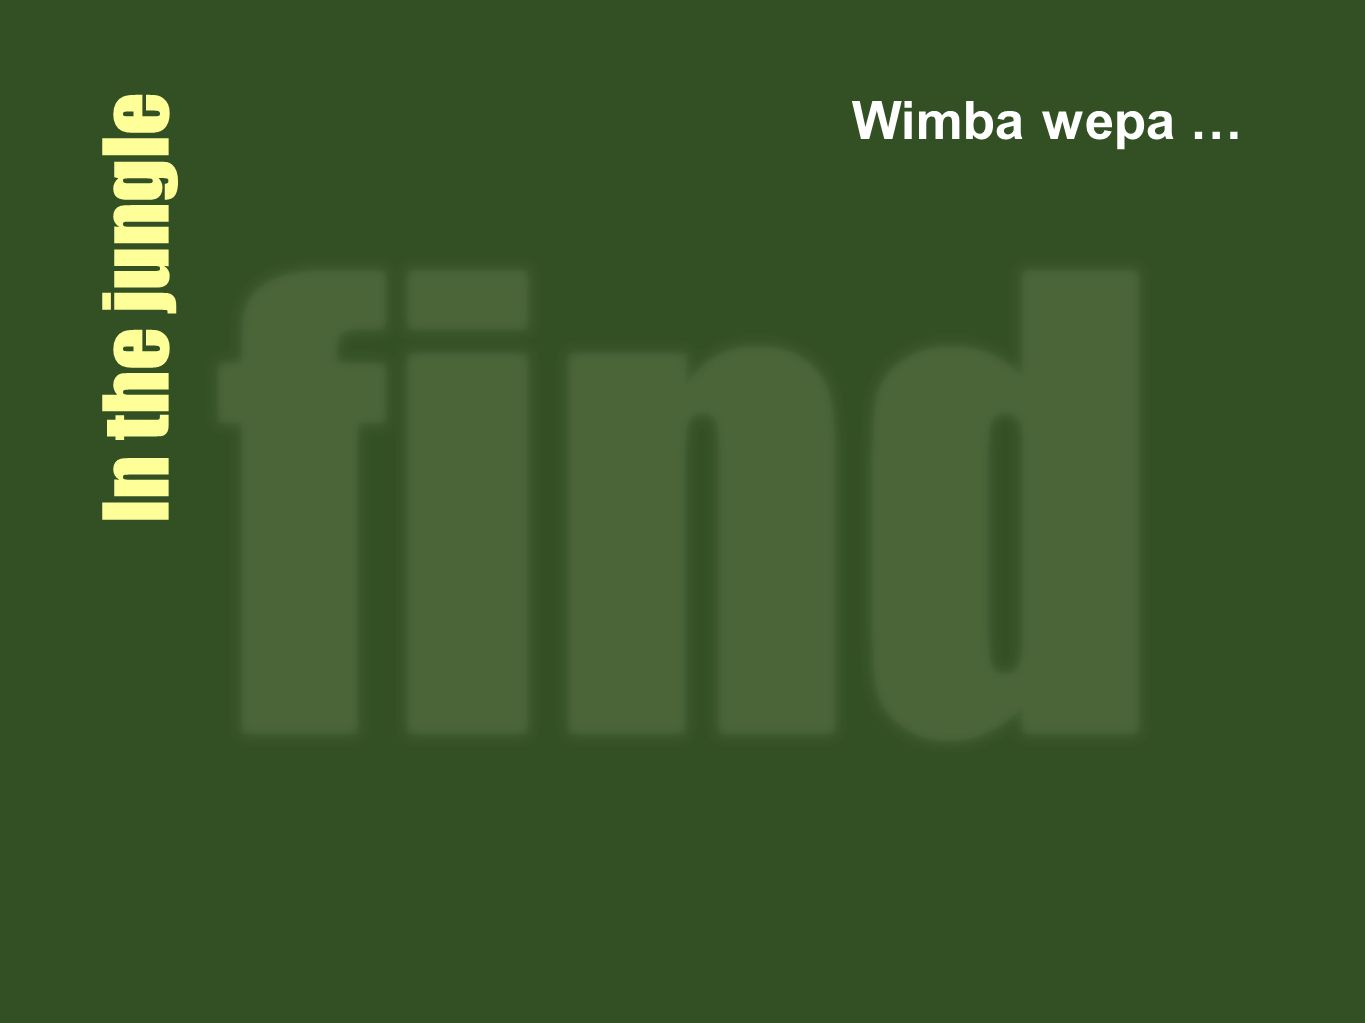 Wimba wepa … In the jungle